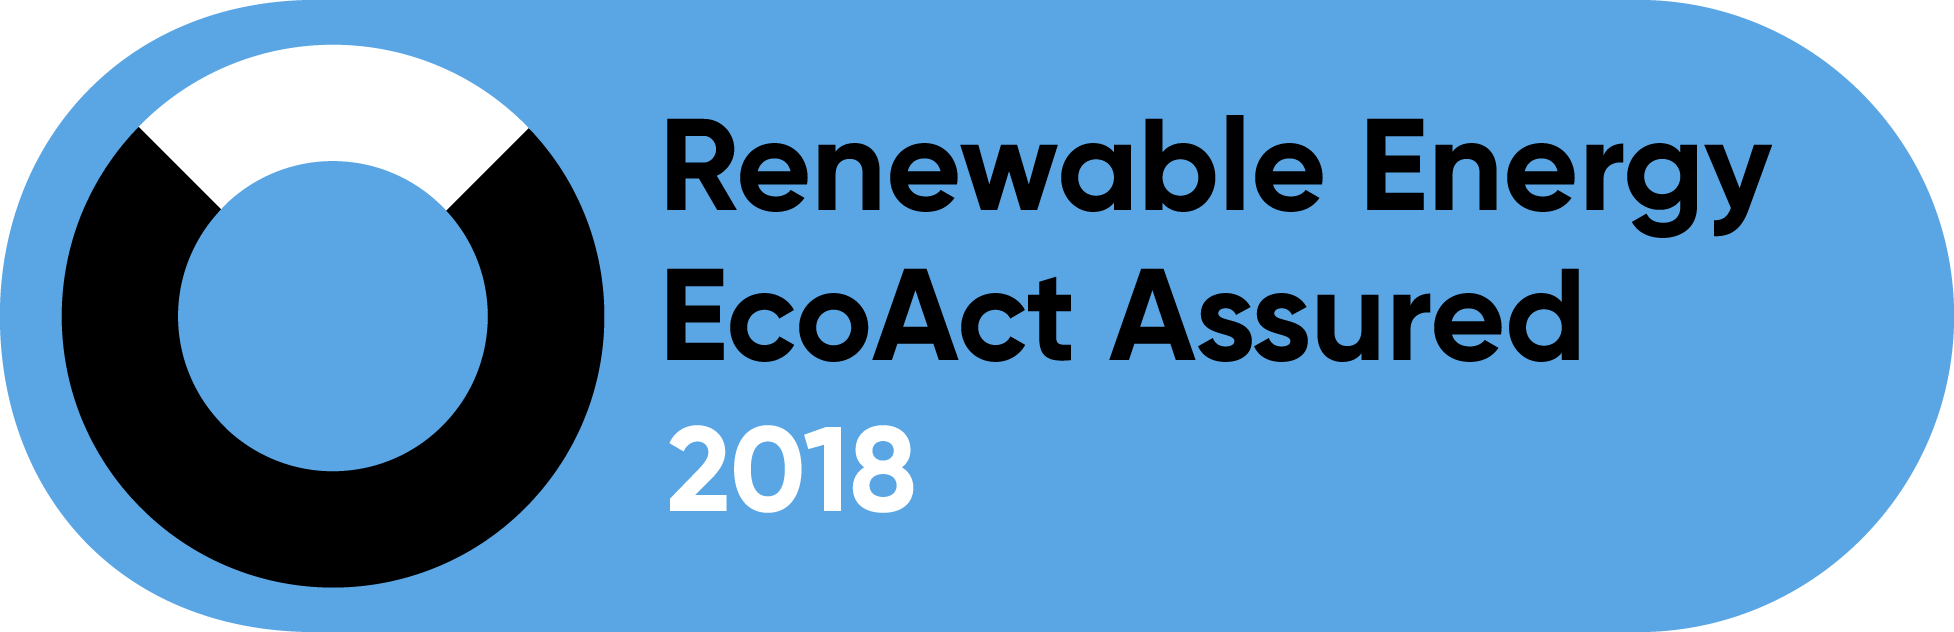 Renewable Energy - EcoAct Assured